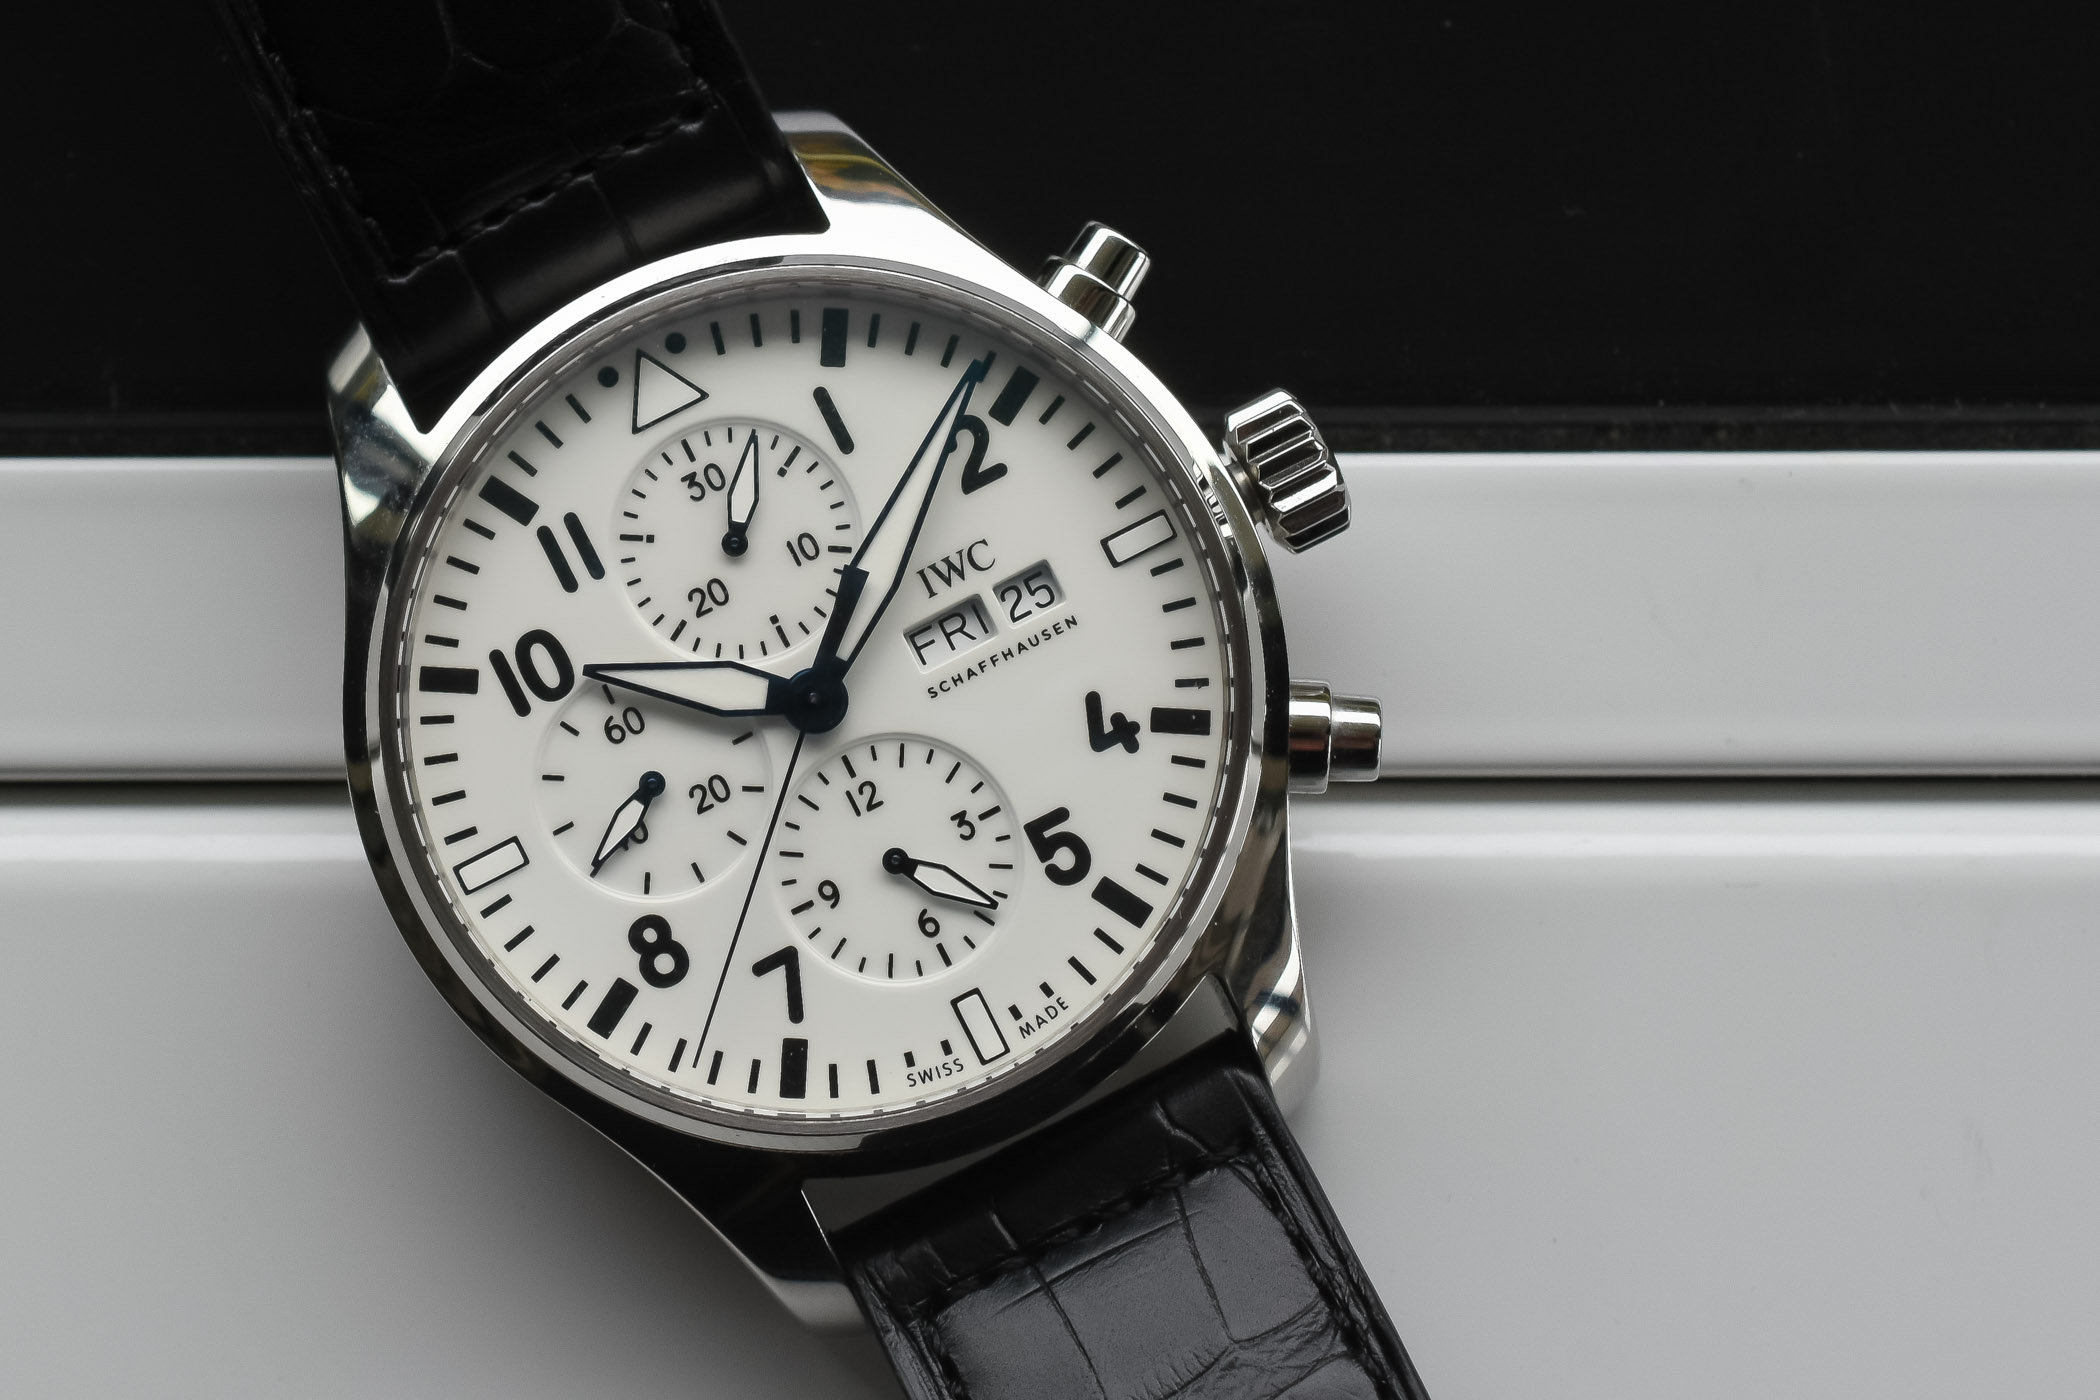 IWC Pilot's Watch Chronograph Edition 150 Years IW377725 - SIHH 2018